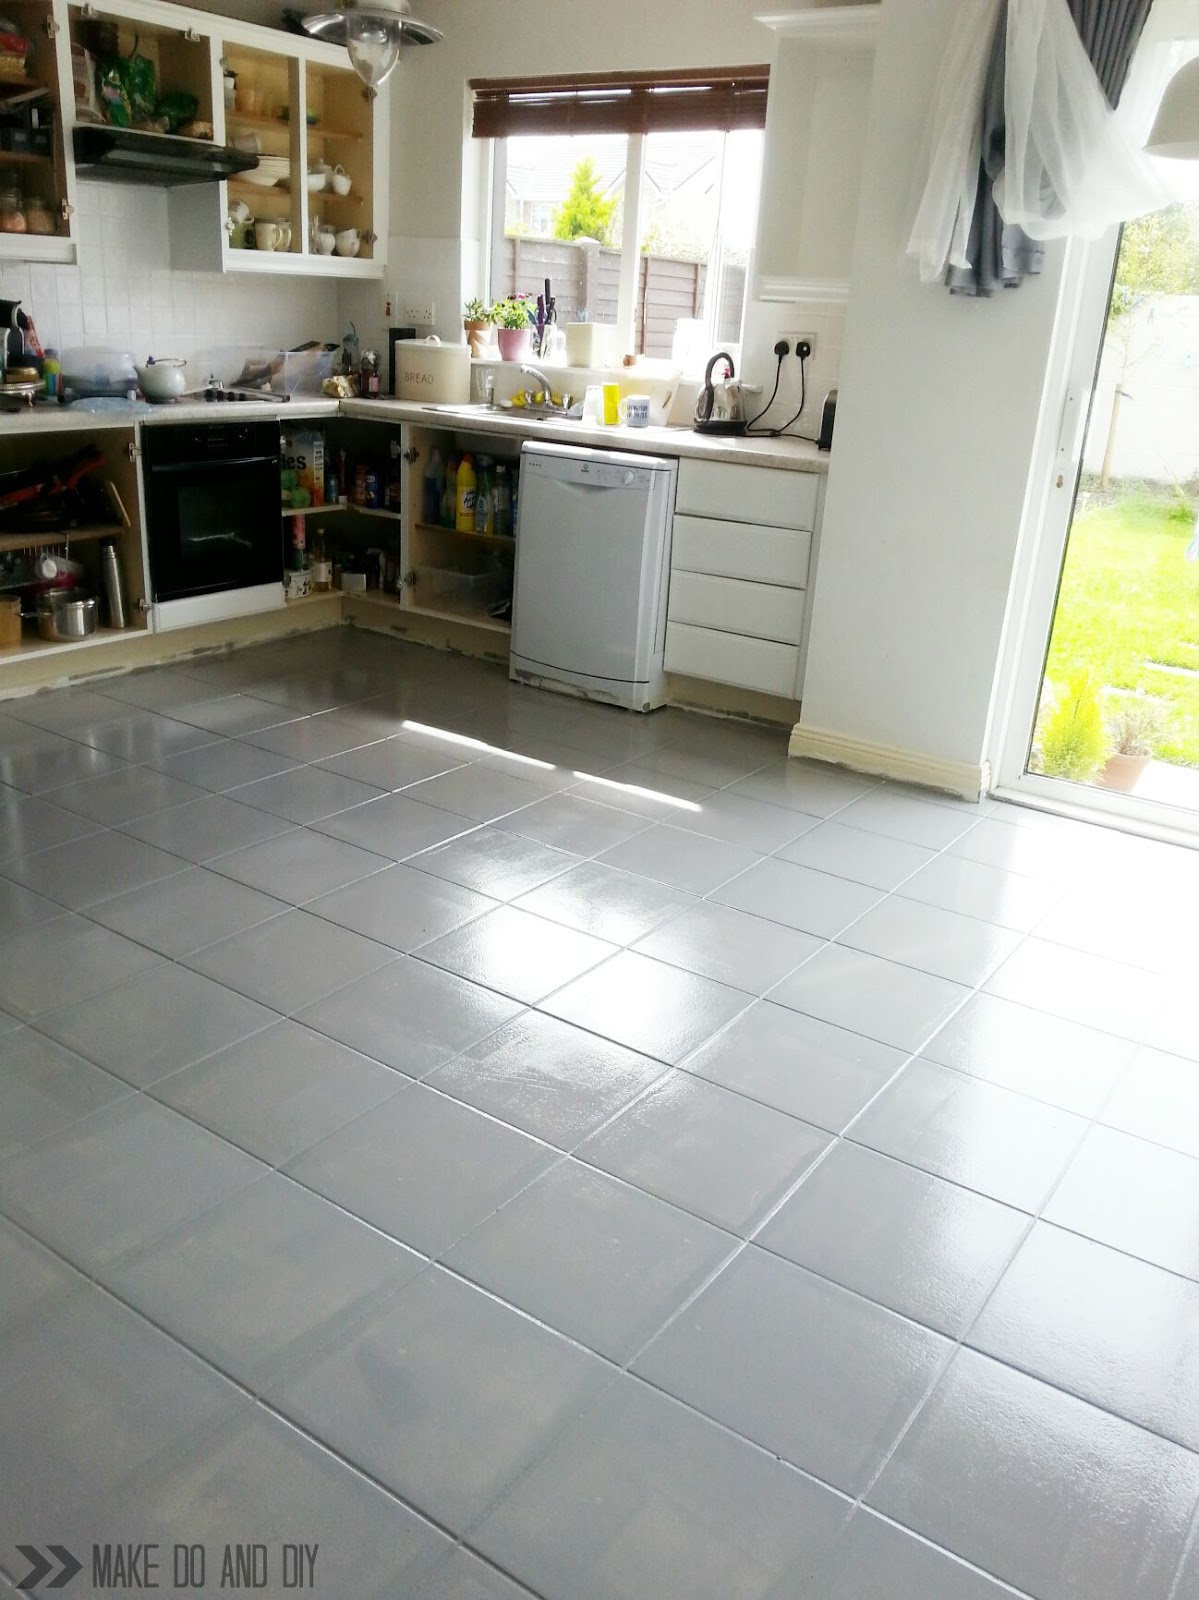 How To Paint Ceramic Tile Floor | Tile Design Ideas